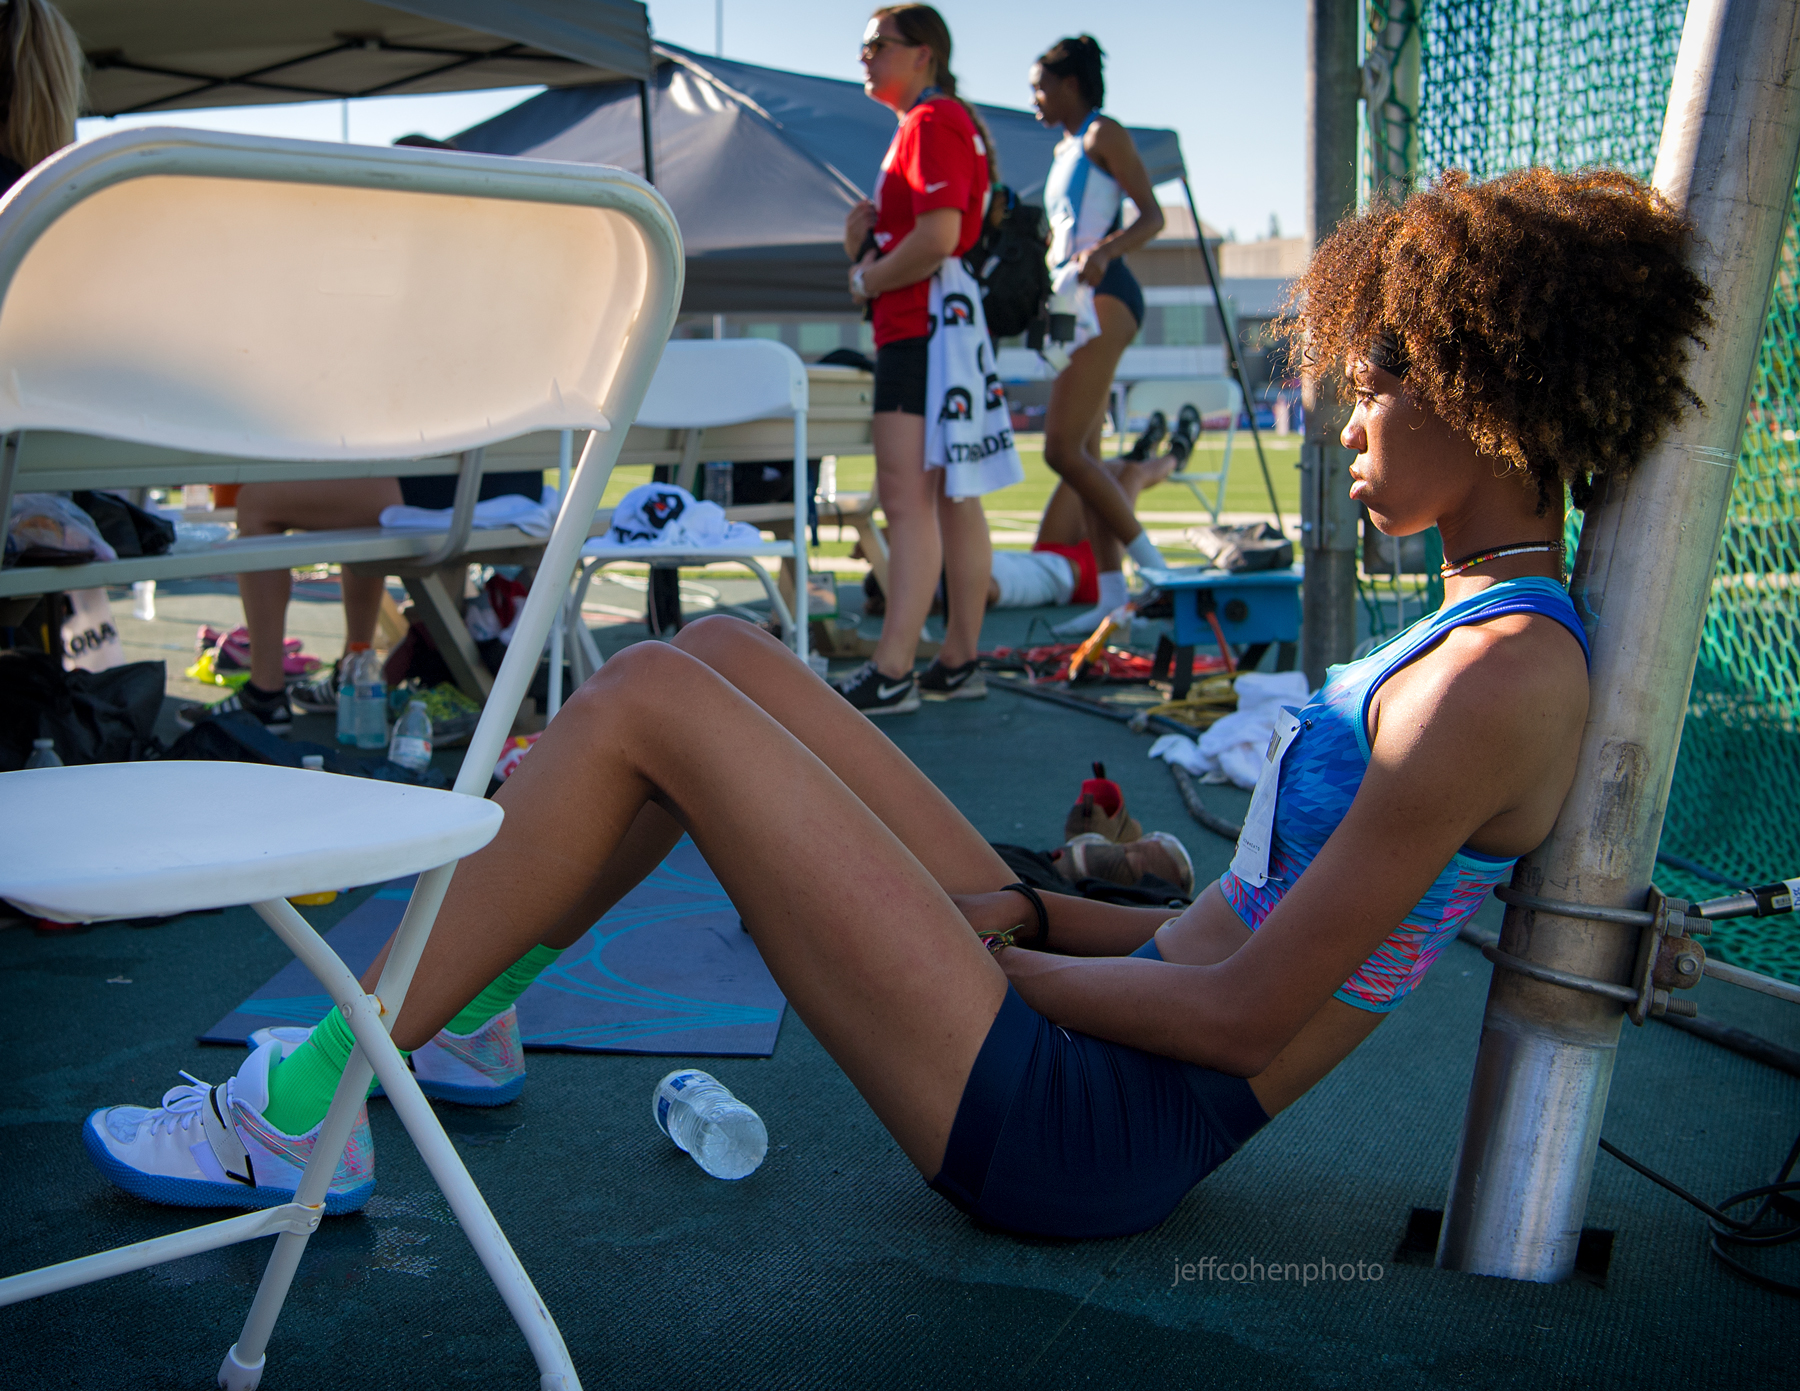 2017-usatf-outdoor-champs-day-2-cunningham-hjw--jeff-cohen-photo--4271-web.jpg